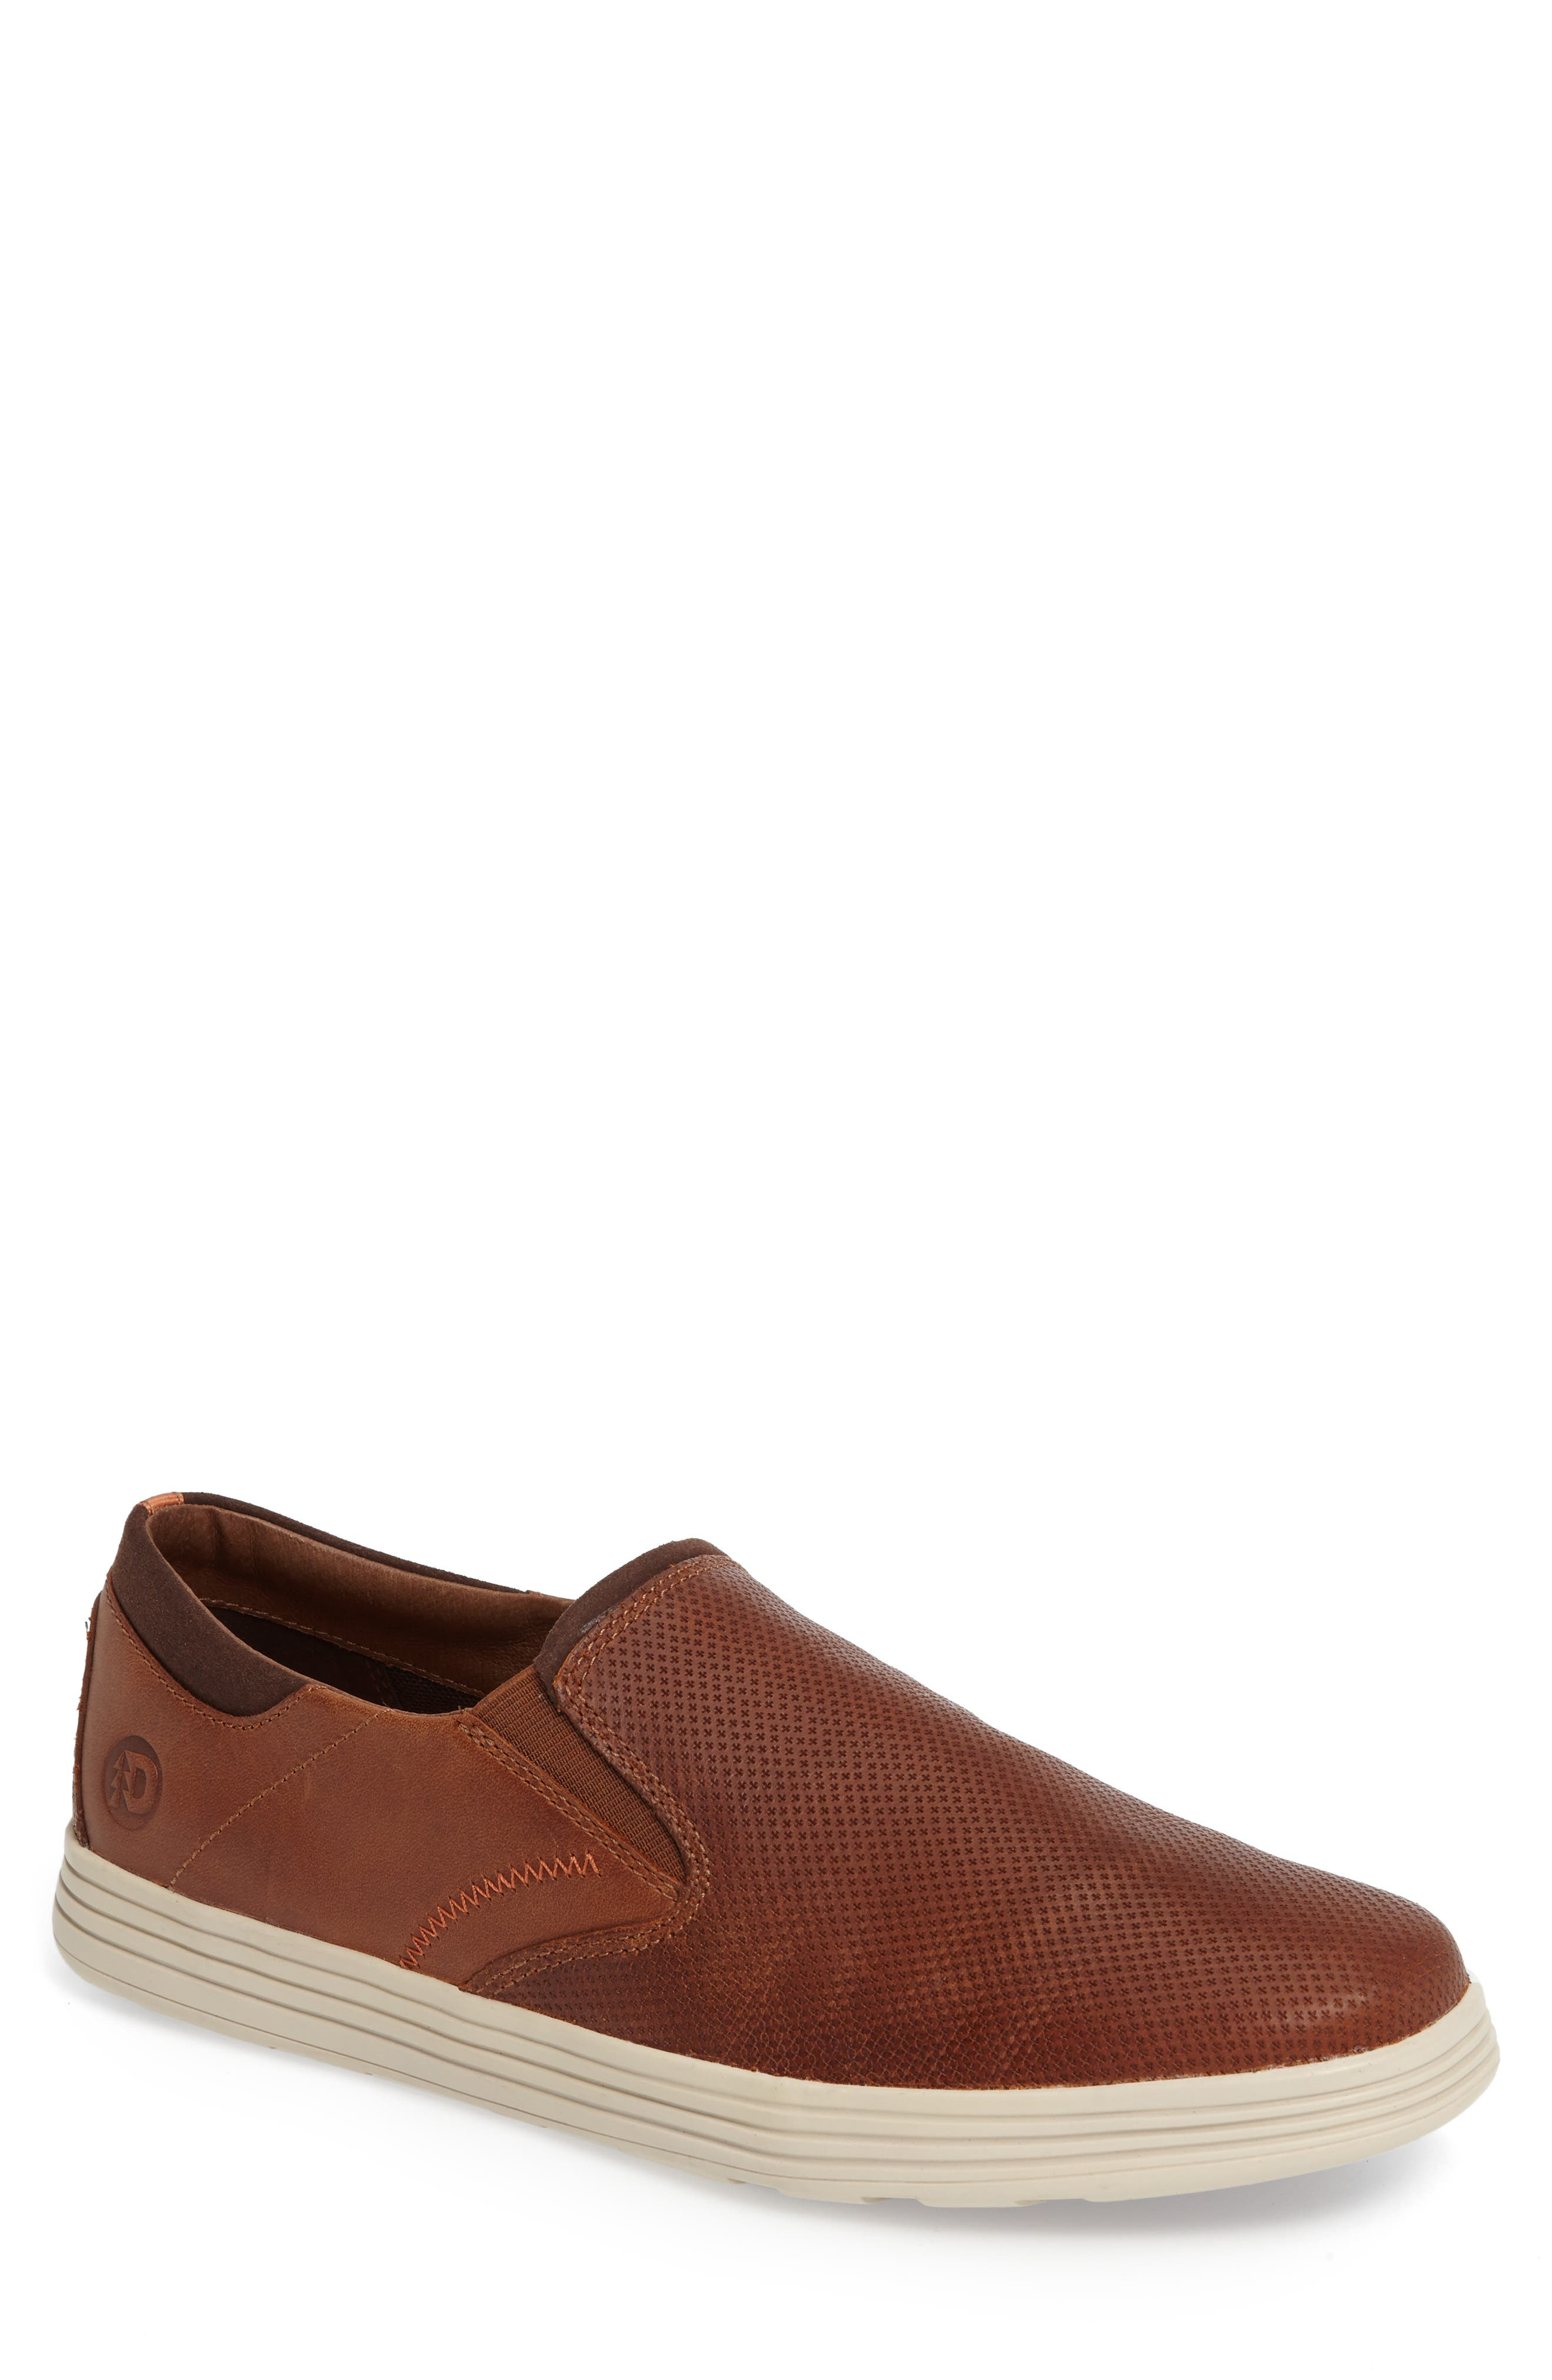 DUNHAM, Colchester Slip-On, Main thumbnail 1, color, BROWN